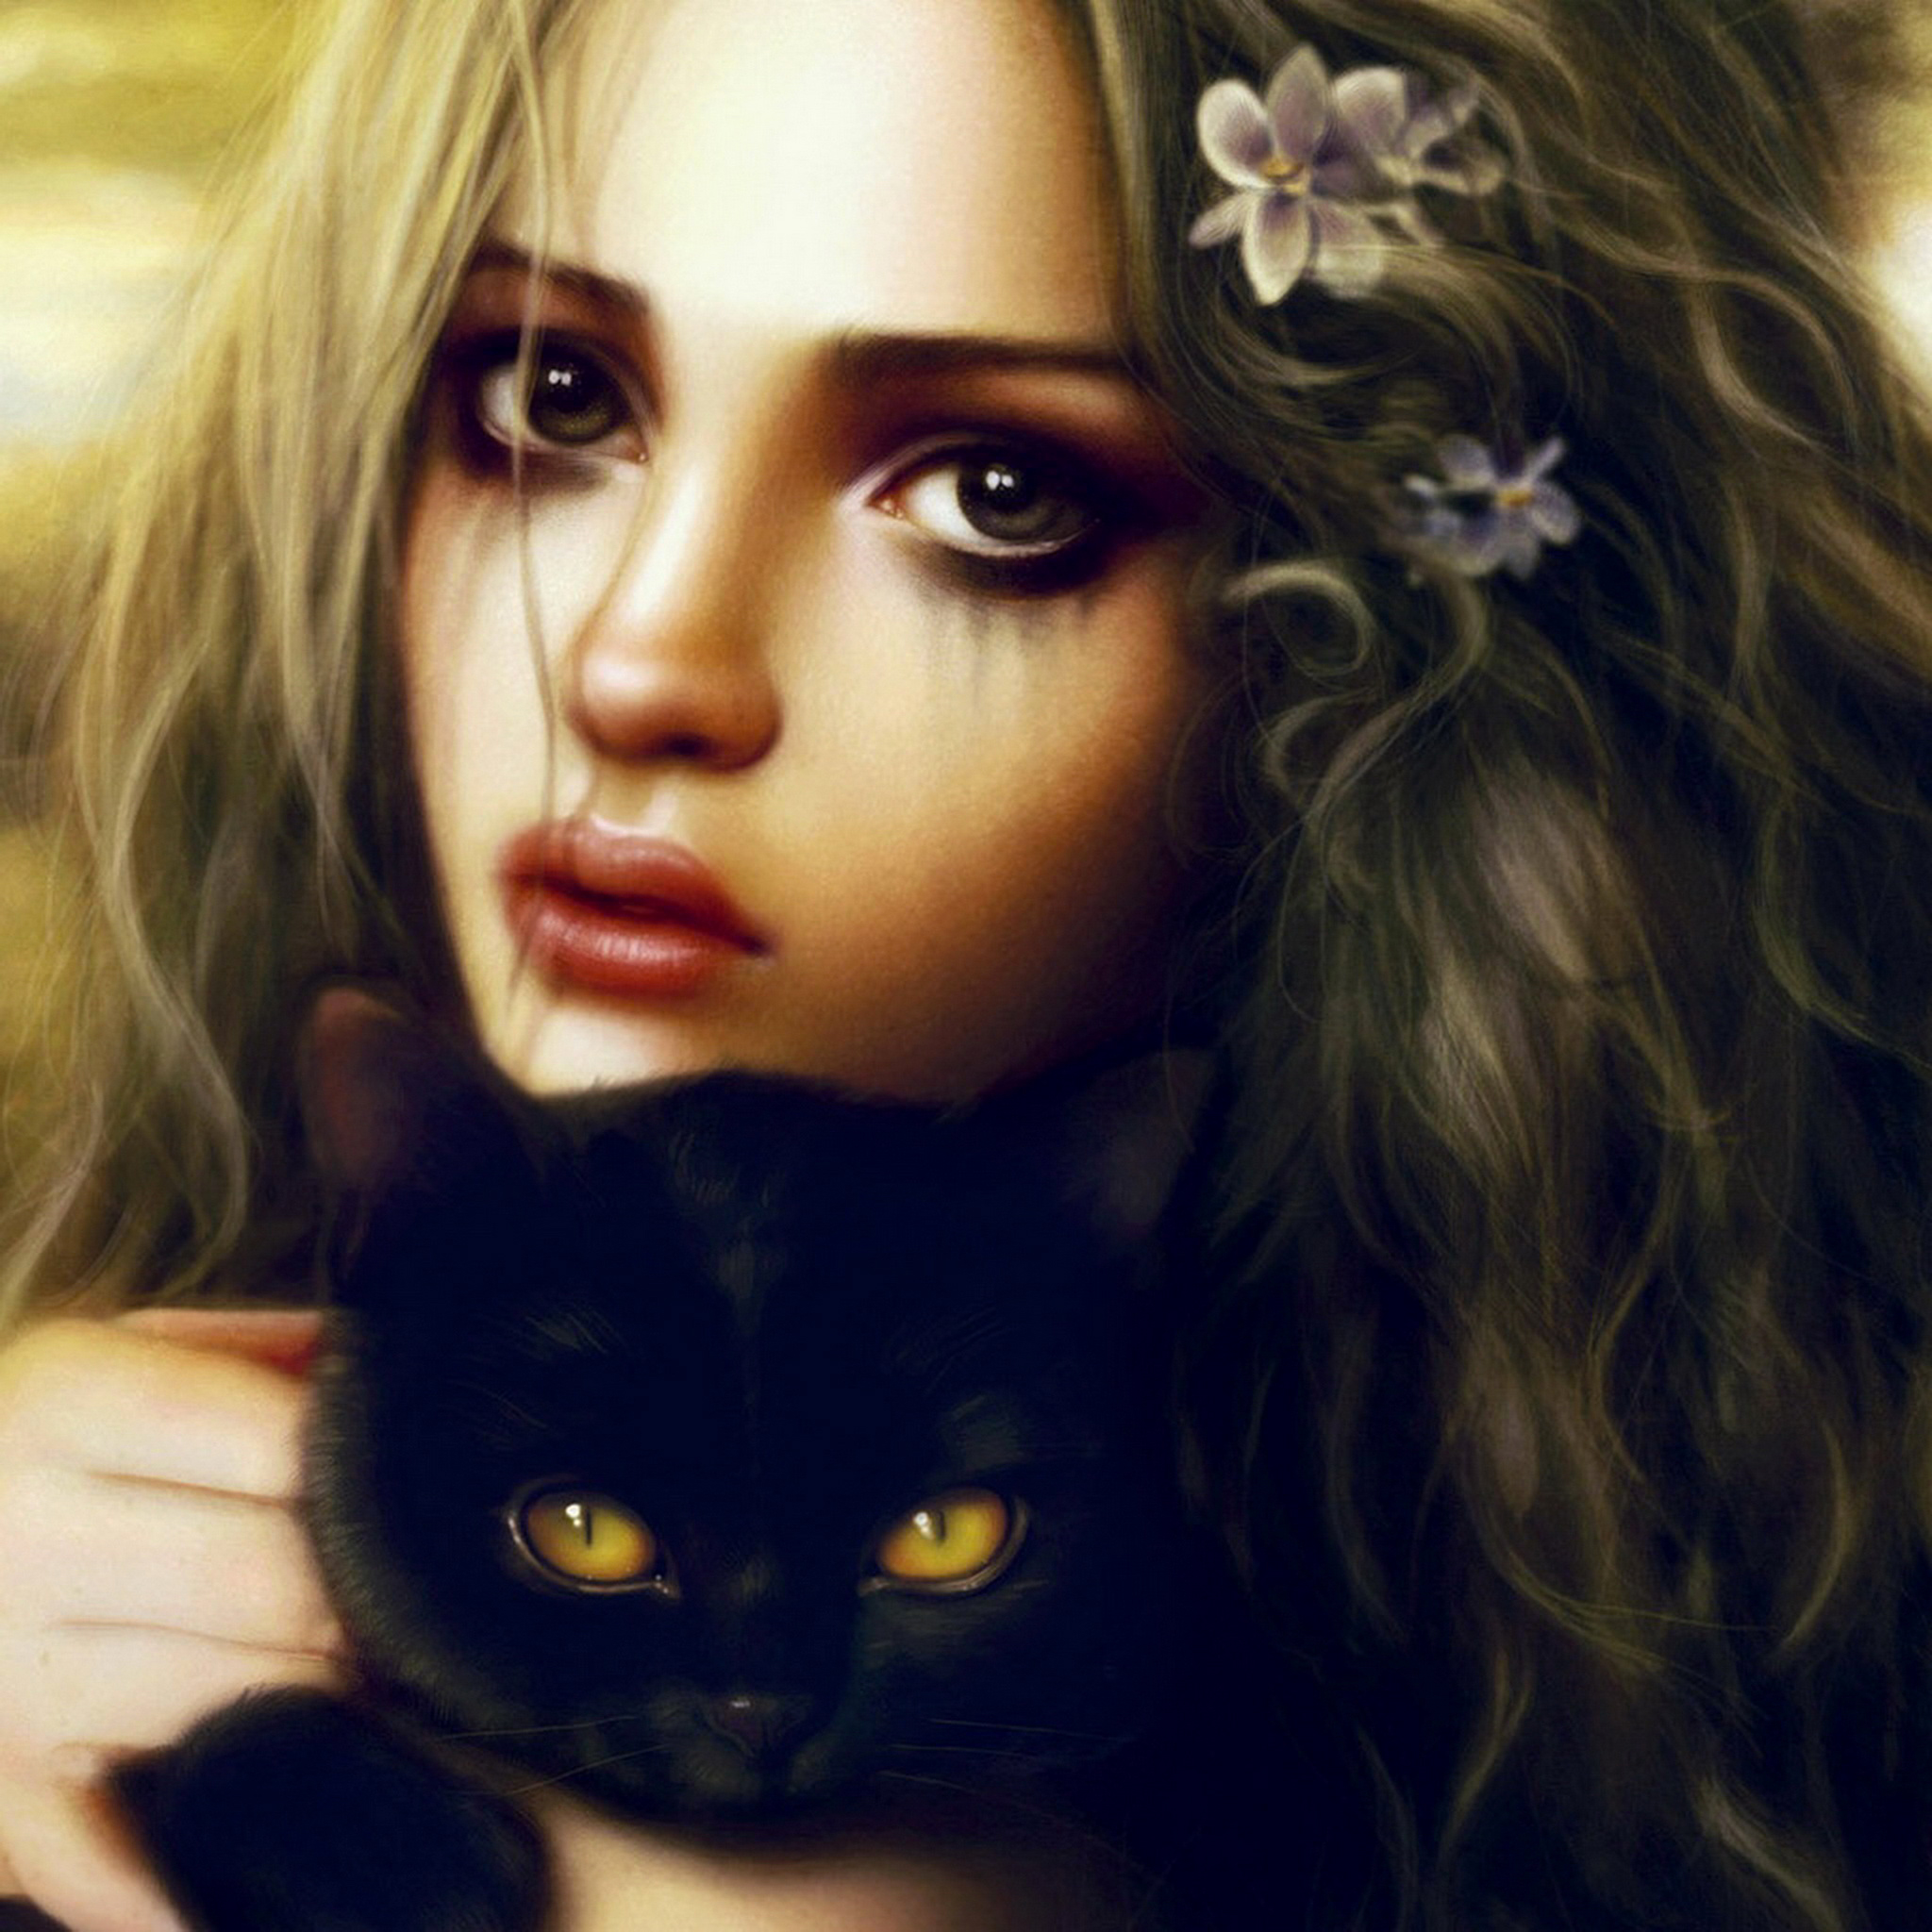 Girl ans Cat 3Wallpapers ipad Retina Girl and Cat   iPad Retina